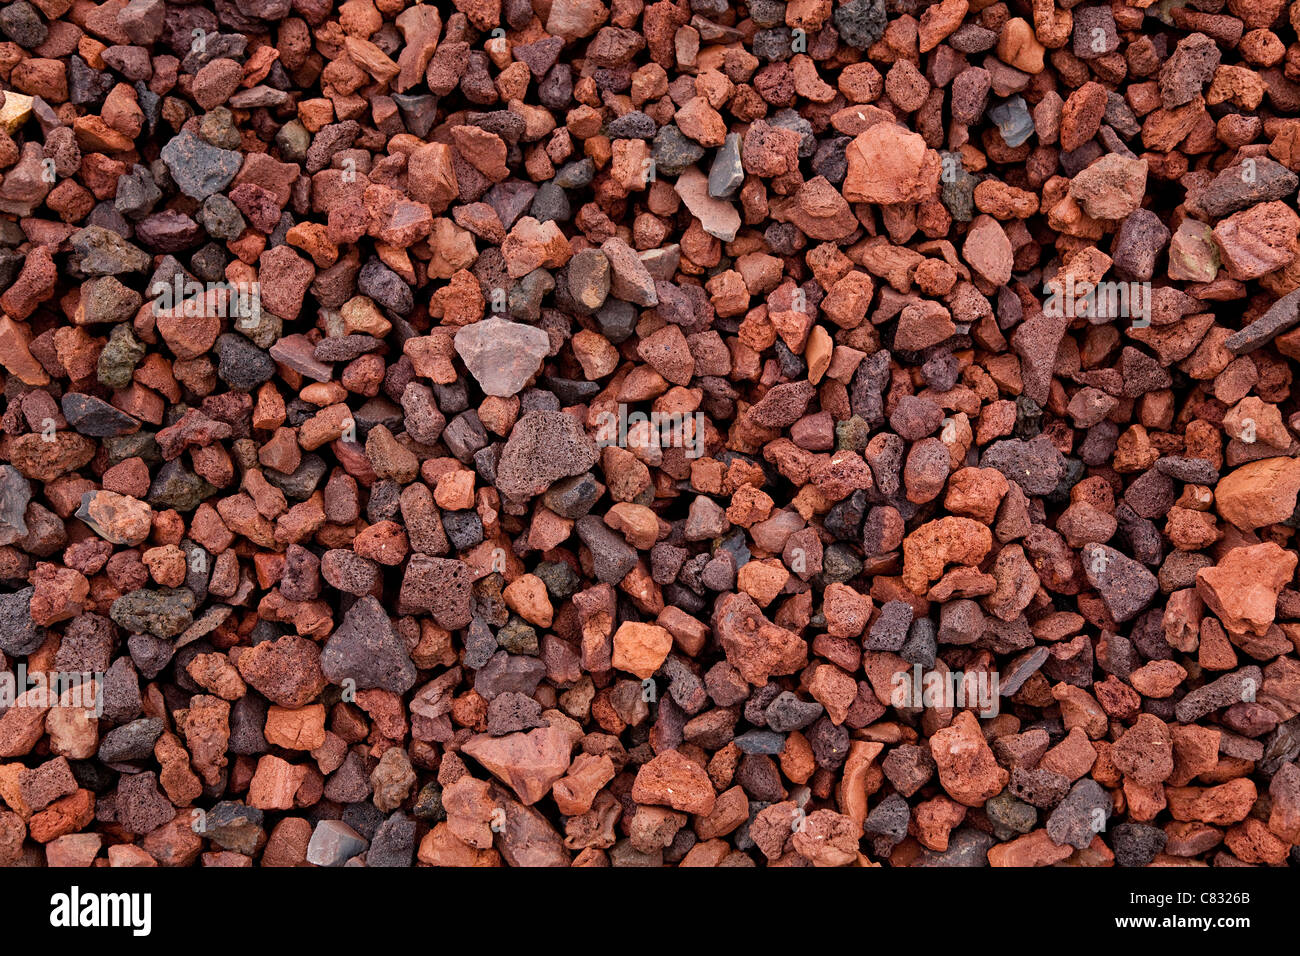 Lava Rock for Textured Background - Stock Image